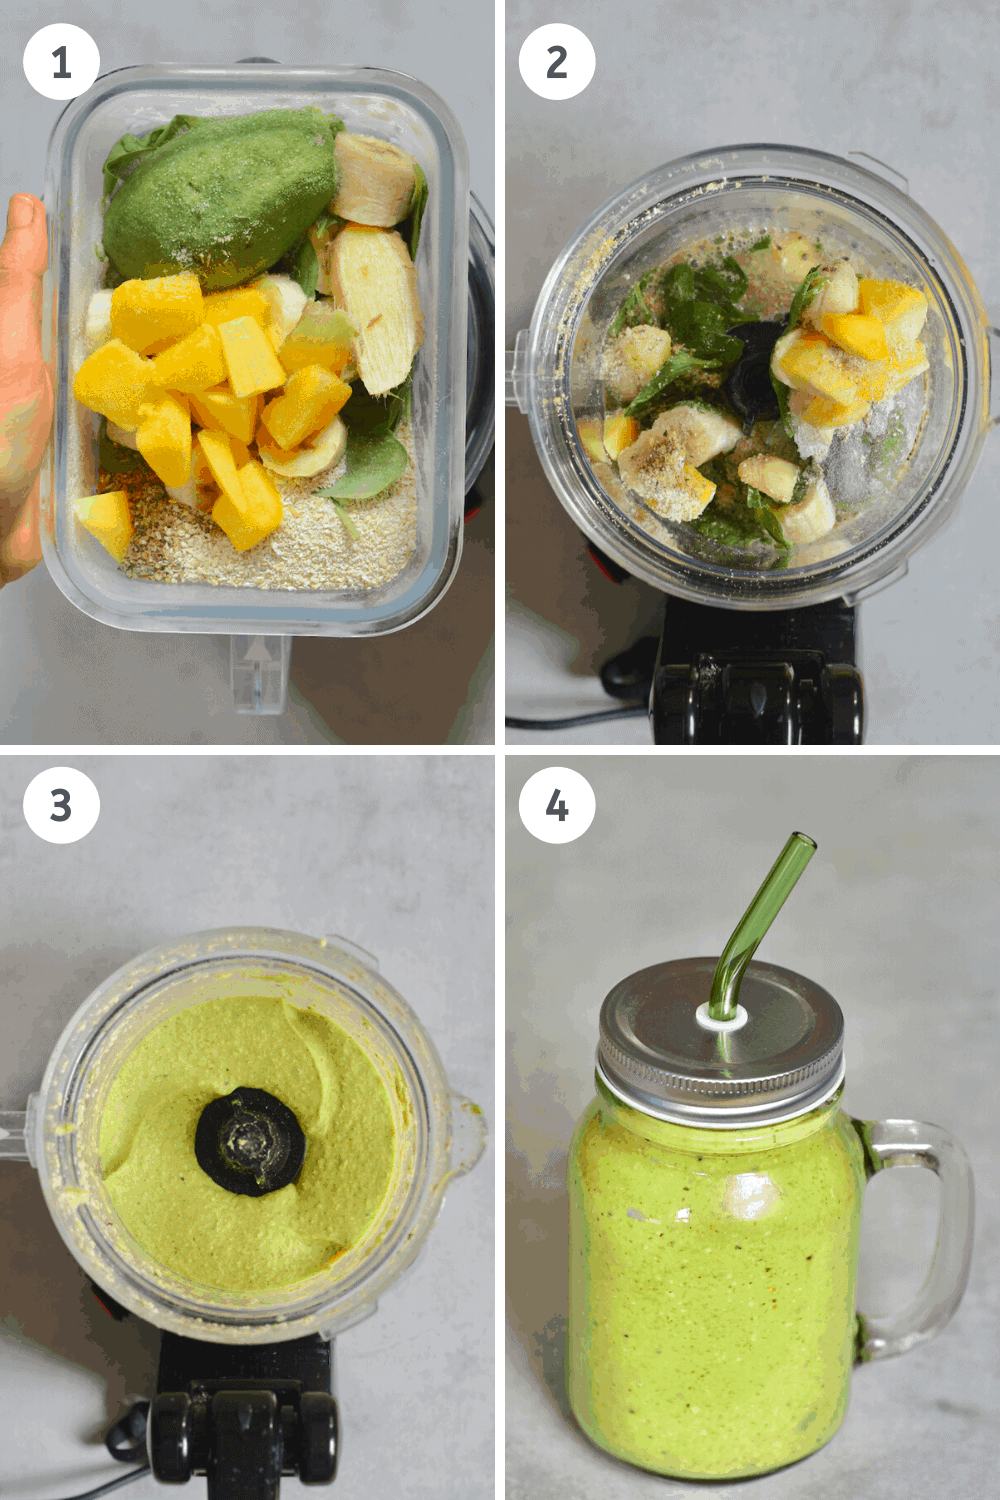 Green Smoothie Steps